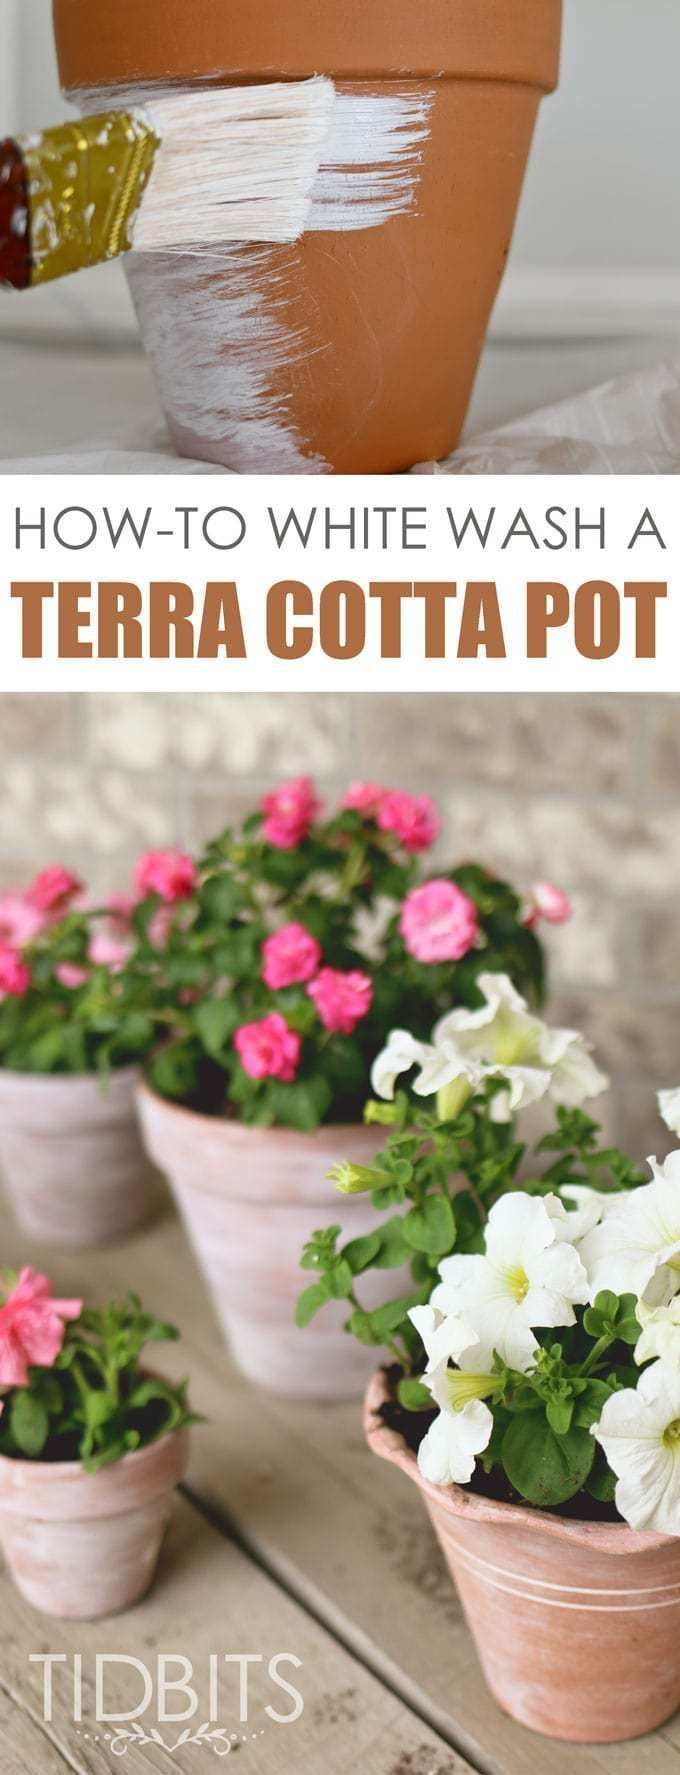 How-To White Wash a Terra Cotta Pot -   24 white garden pots